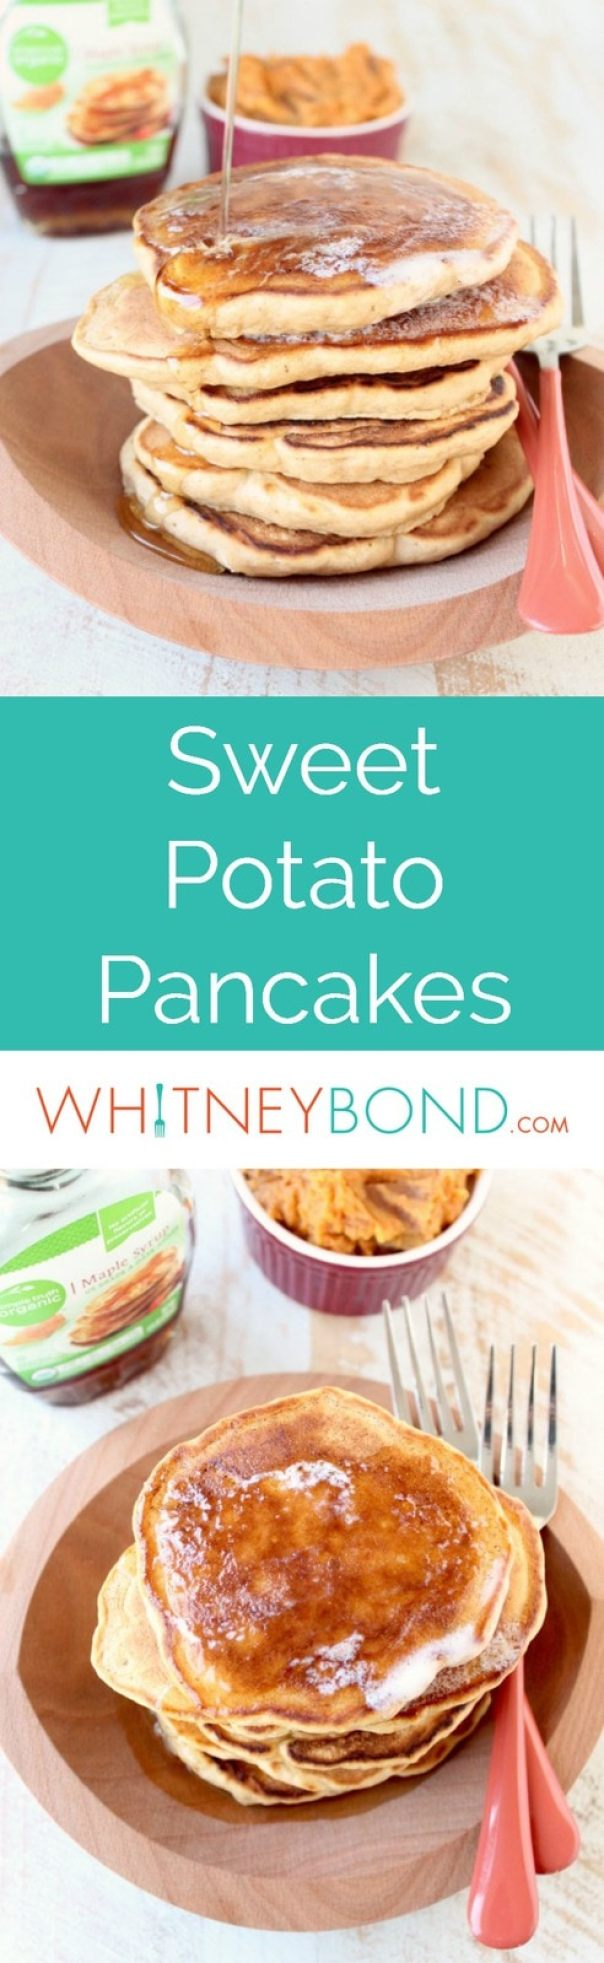 This scrumptious breakfast recipe for Sweet Potato Pancakes makes great use of leftover mashed sweet potatoes after Thanksgiving or Christmas.